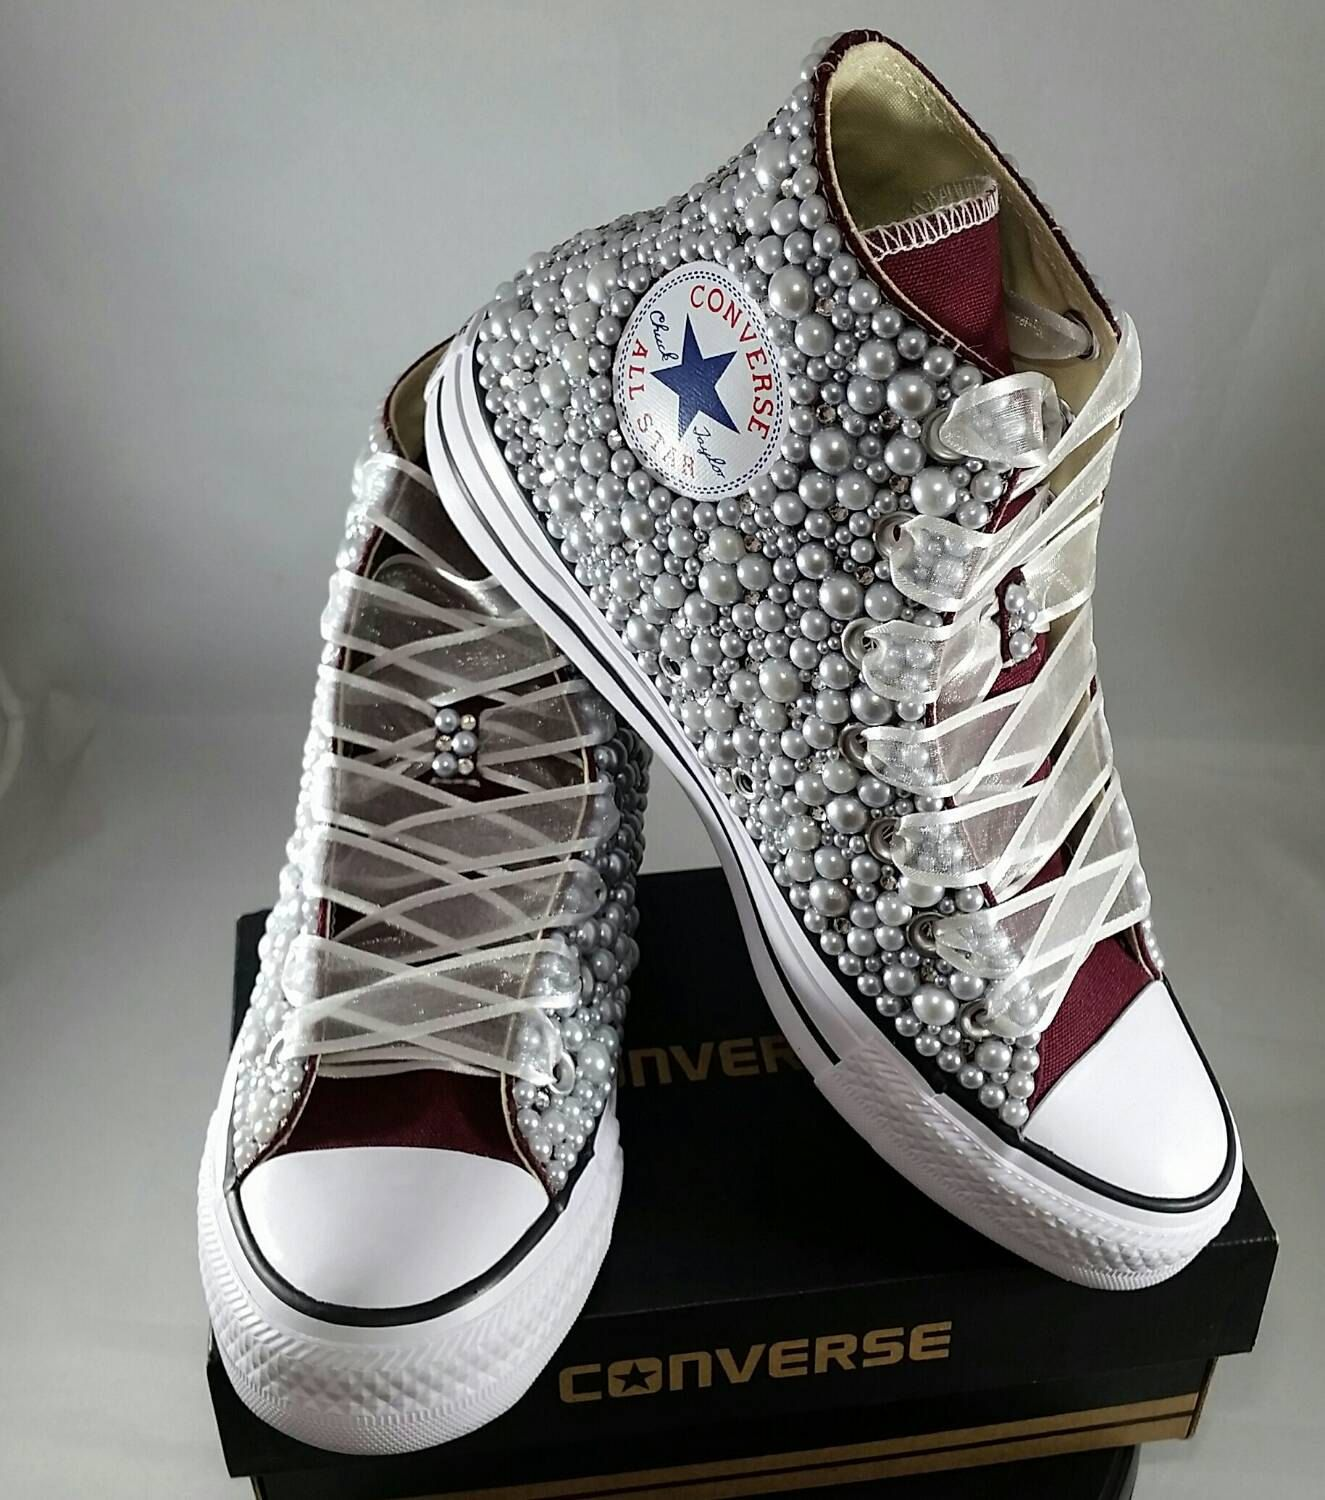 f69984198be2 Bridal Converse- Wedding Converse- Bling   Pearls Custom Converse Sneakers- Personalized  Chuck Taylors- All Star Converse Sneakers- Bride by DivineUnlimited ...